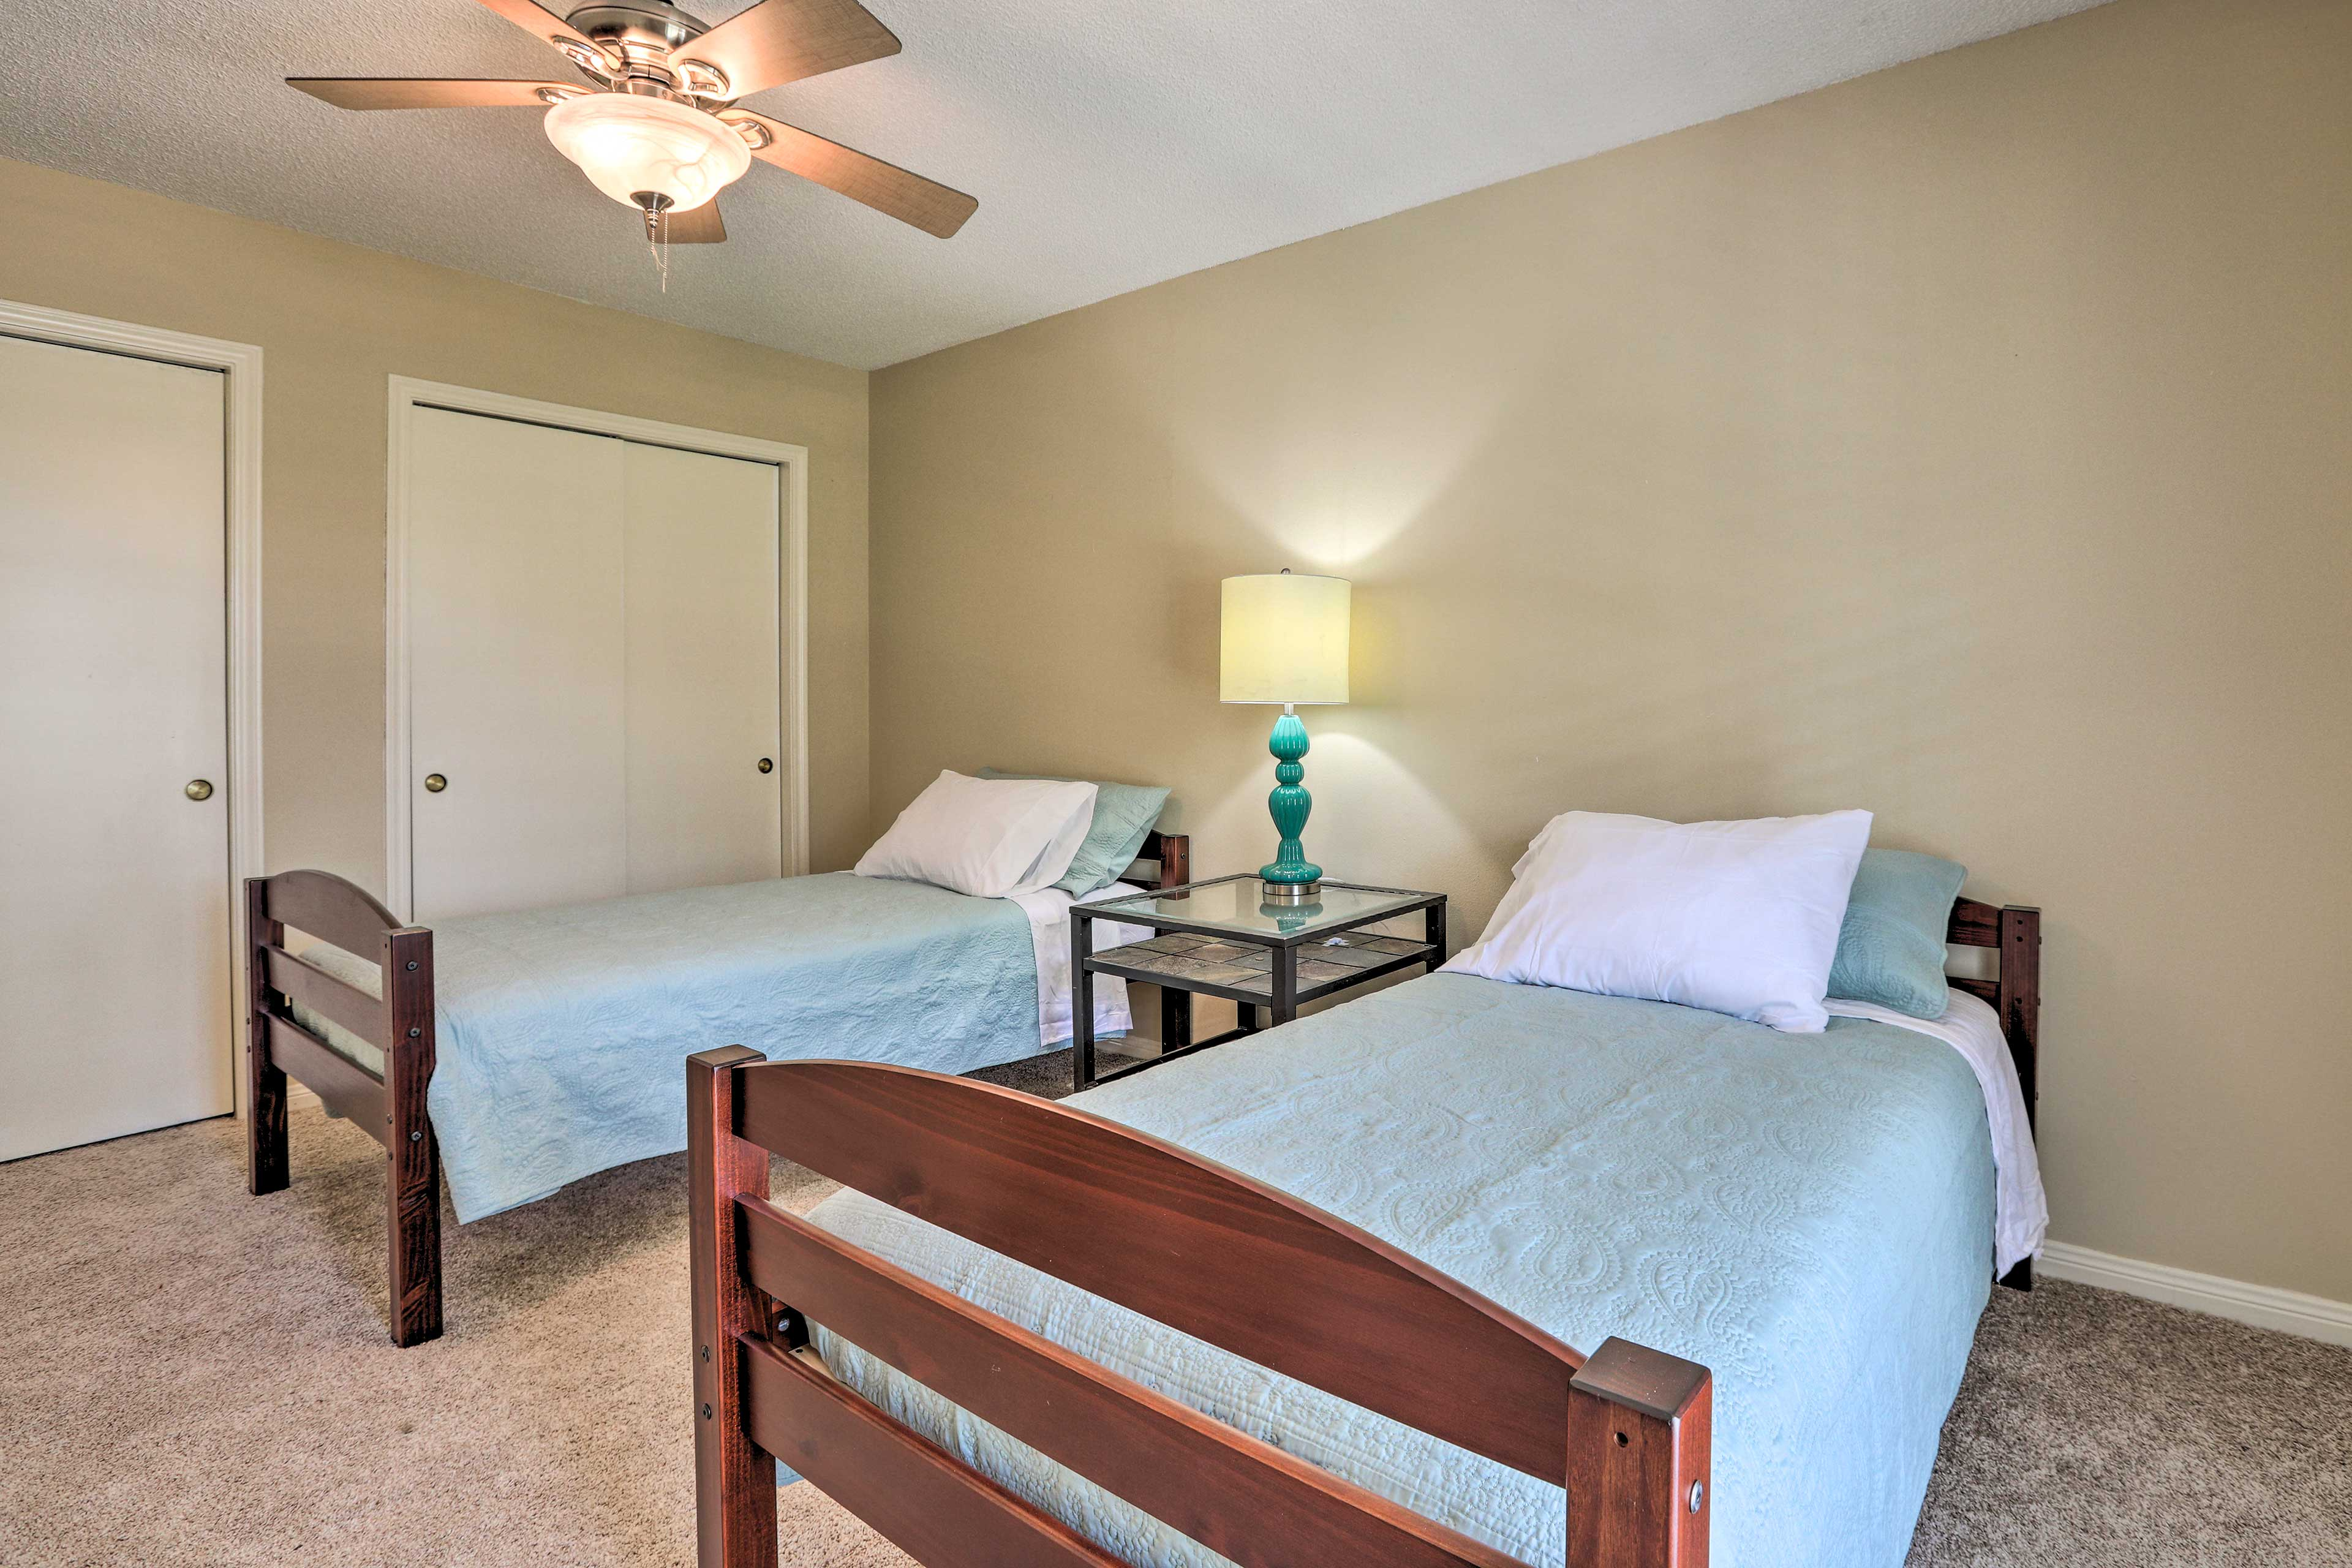 The room has 2 twin beds.